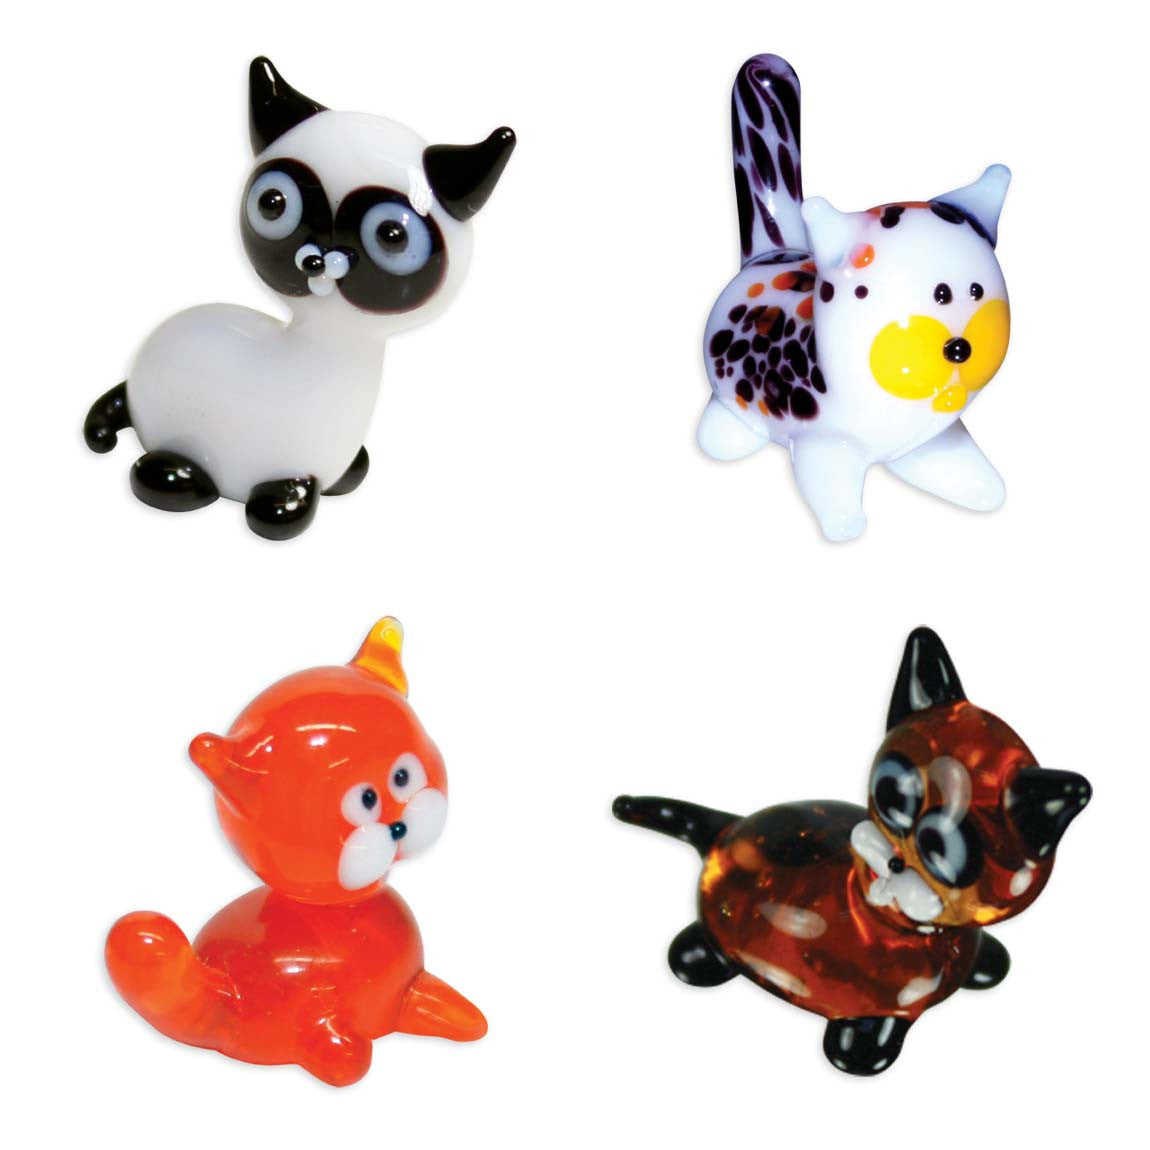 Looking Glass Torch - Feline Figurines - Siamese, Calico, Tabby & Kitten (4-Pack) - Off The Wall Toys and Gifts